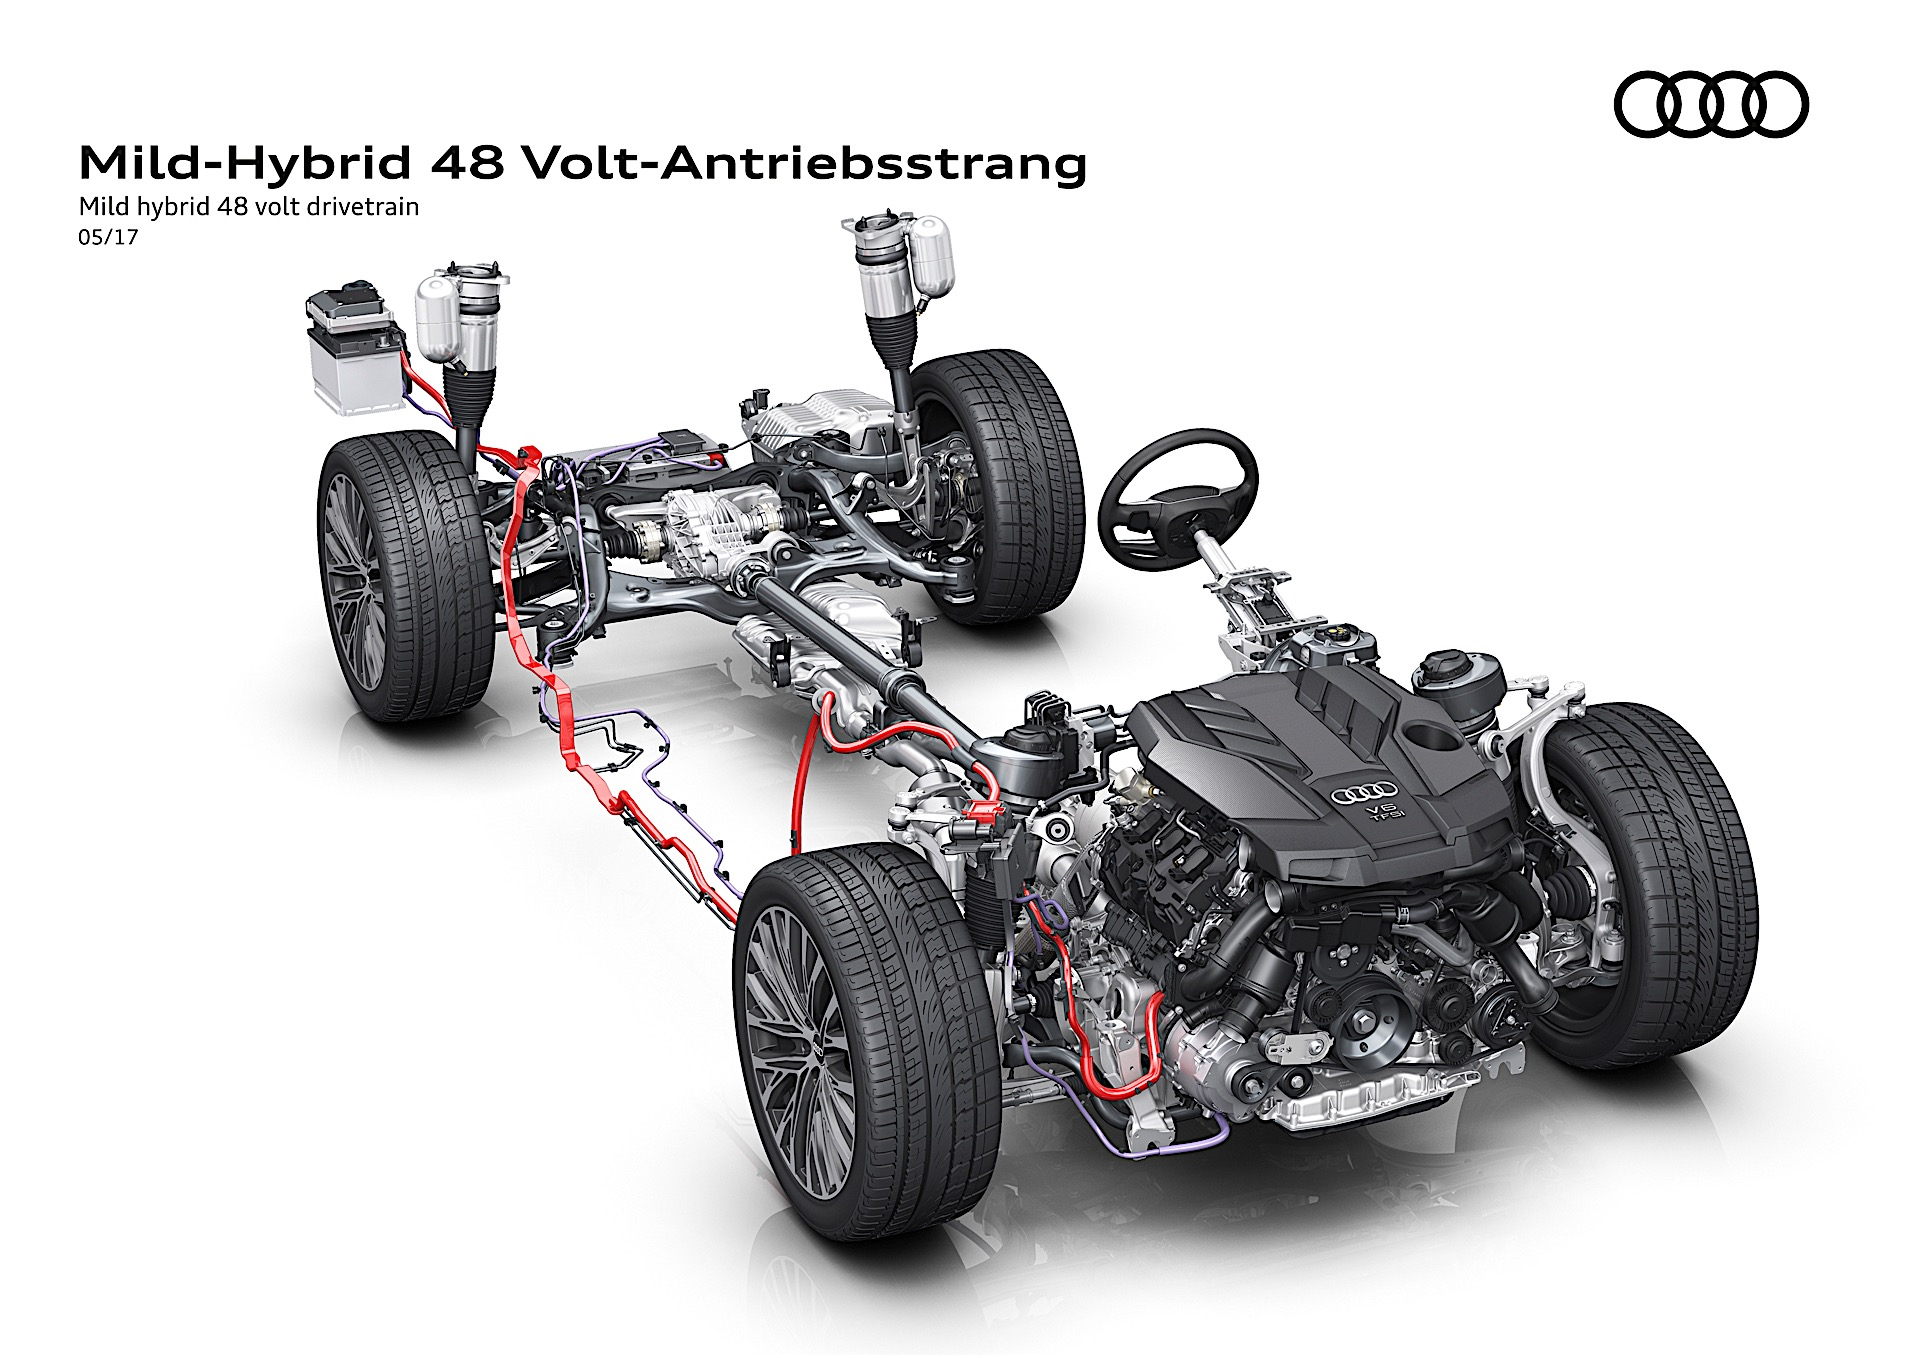 audi a6 engine diagram audi says 2018 a8 can coast at 100 mph thanks to 48v mild